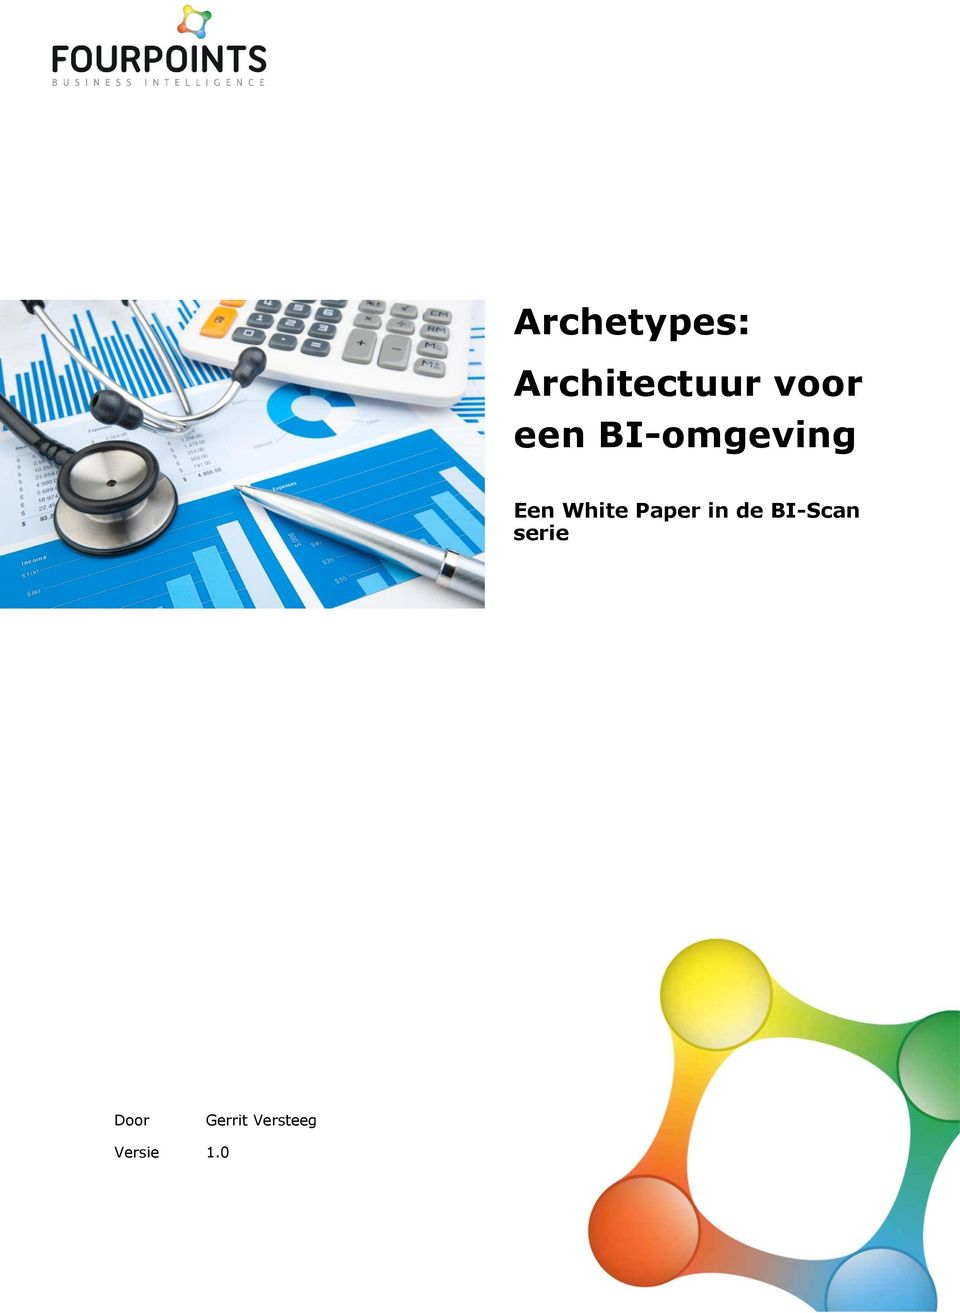 White Paper in de BI-Scan